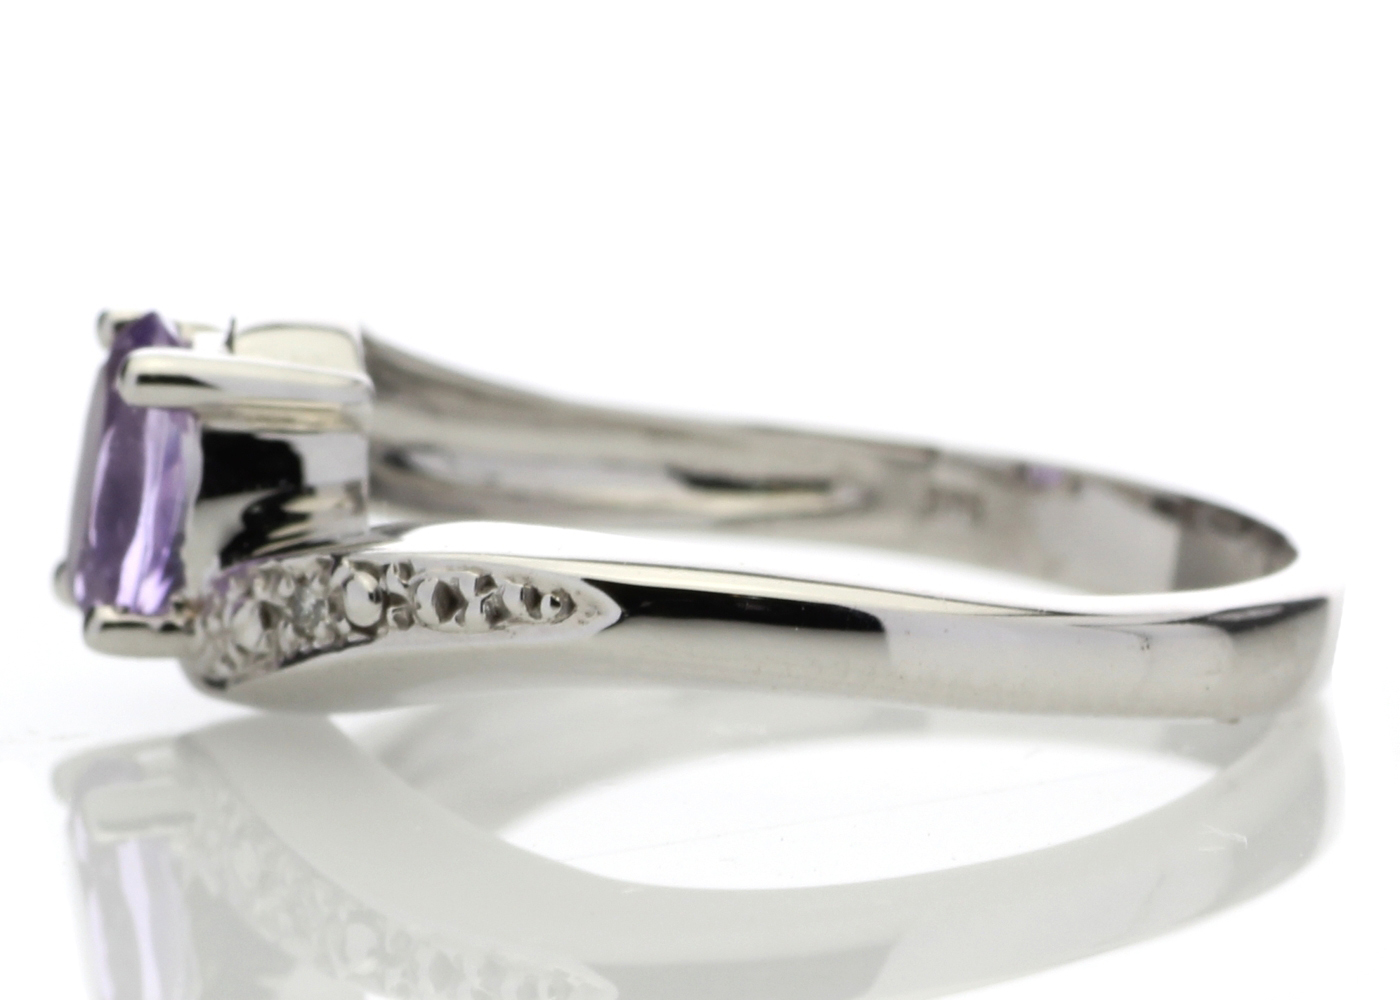 9ct White Gold Amethyst Diamond Ring 0.01 Carats - Image 3 of 4